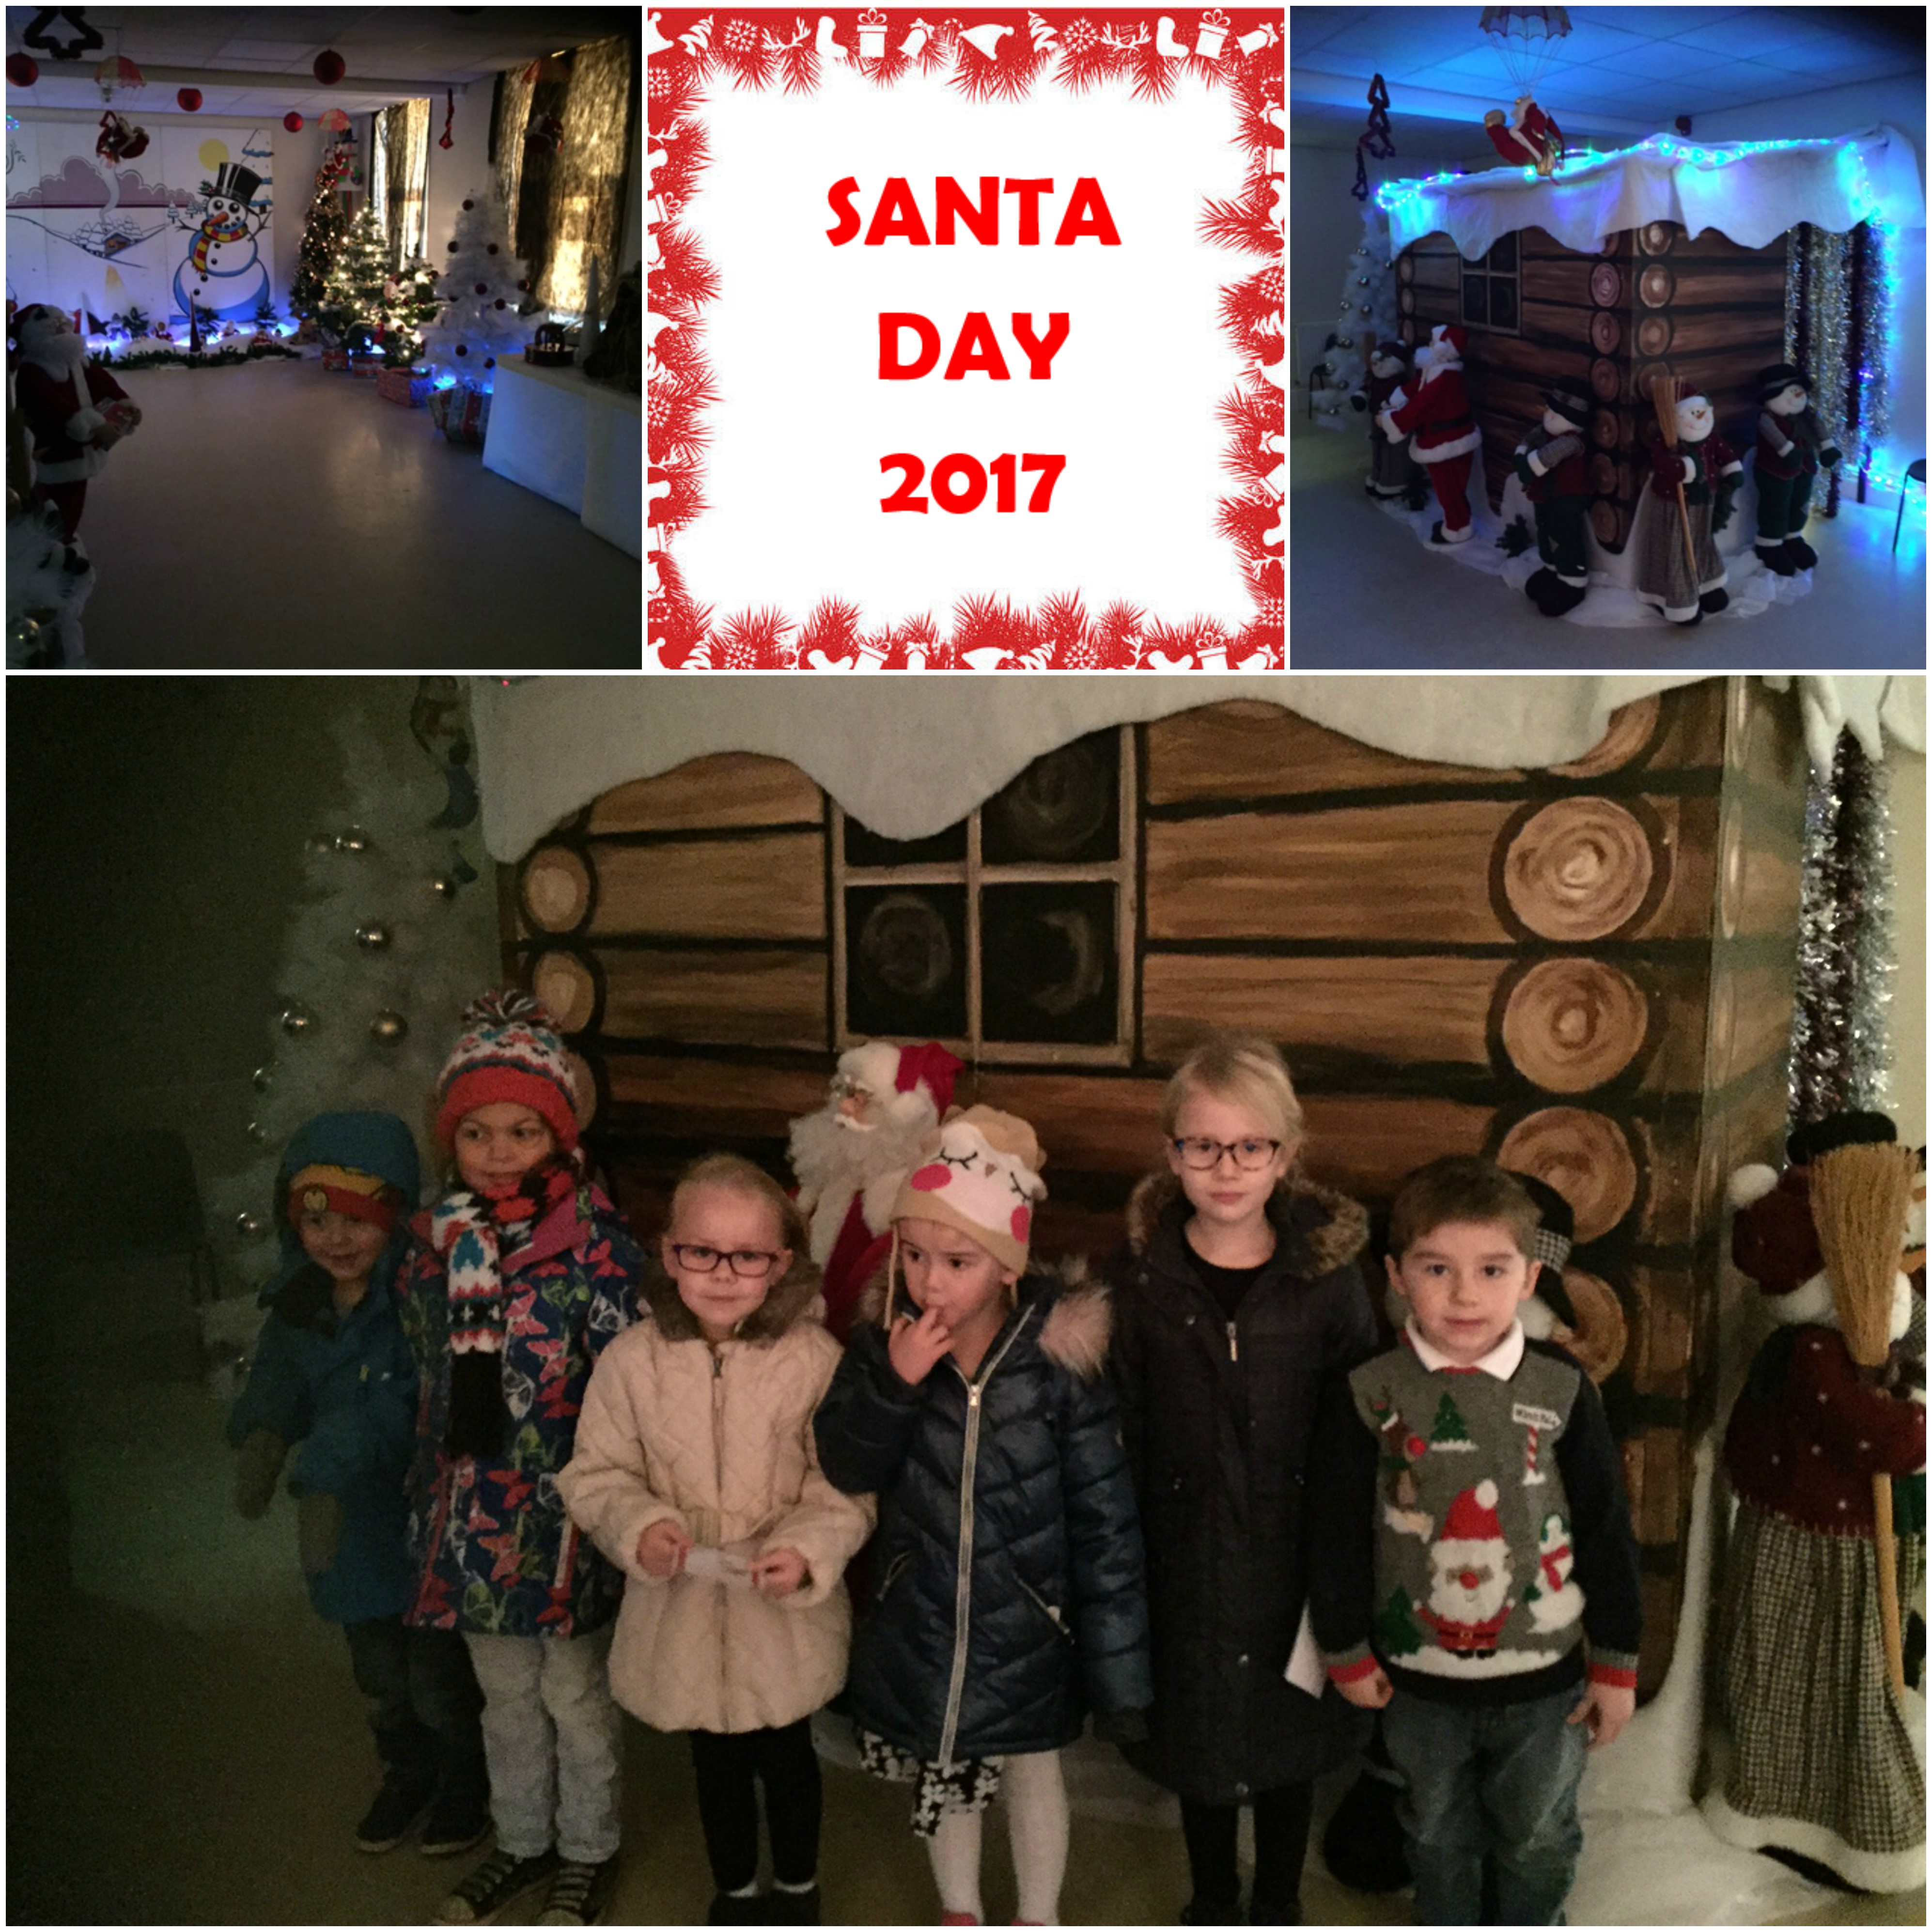 santa day 2017 collage